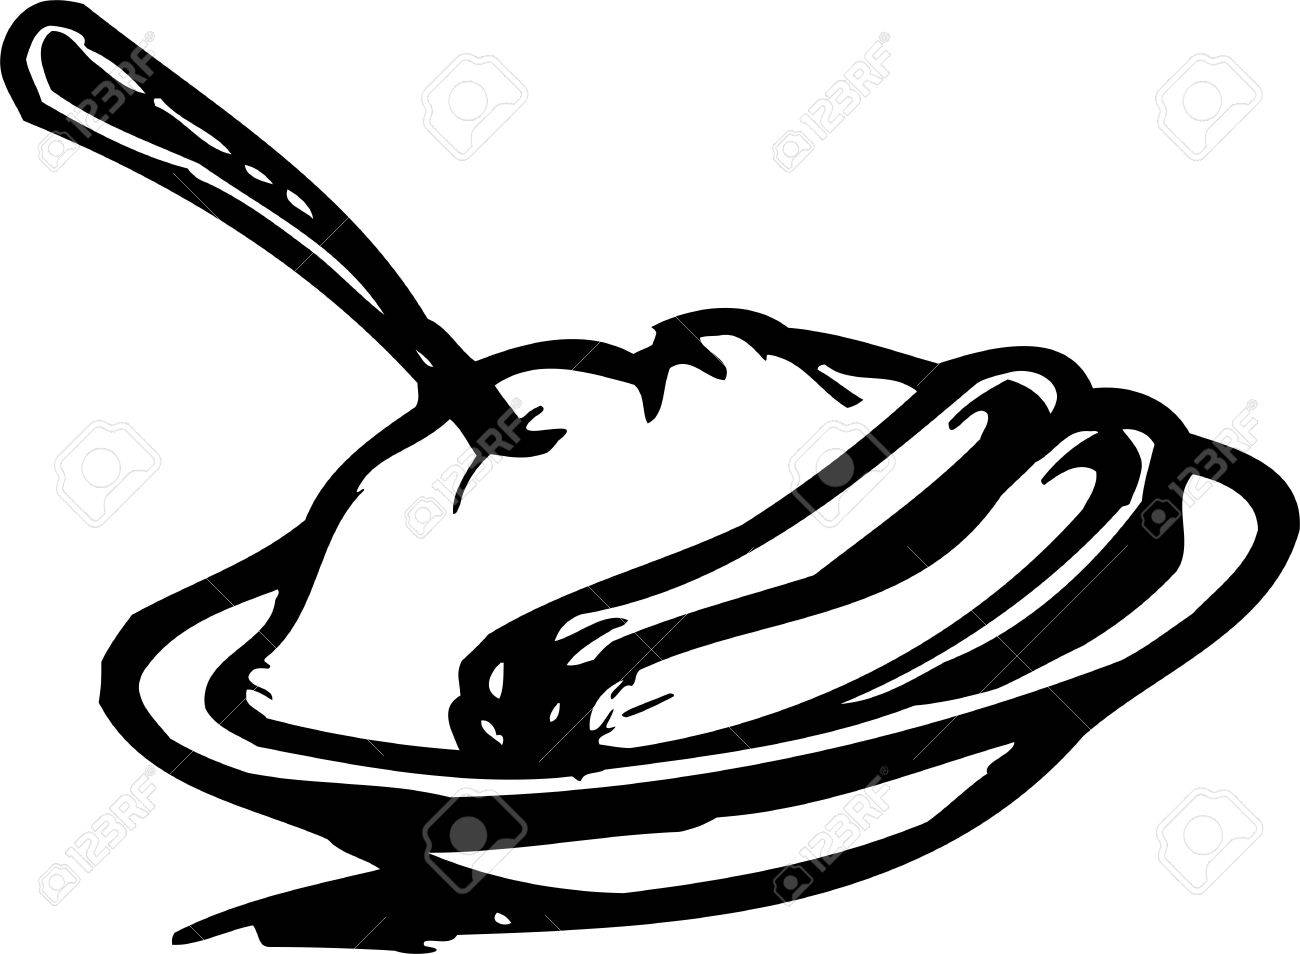 Sausages and mashed potatoes.FastFood.Vector illustration ready for vinyl cutting. Stock Vector - 8758755